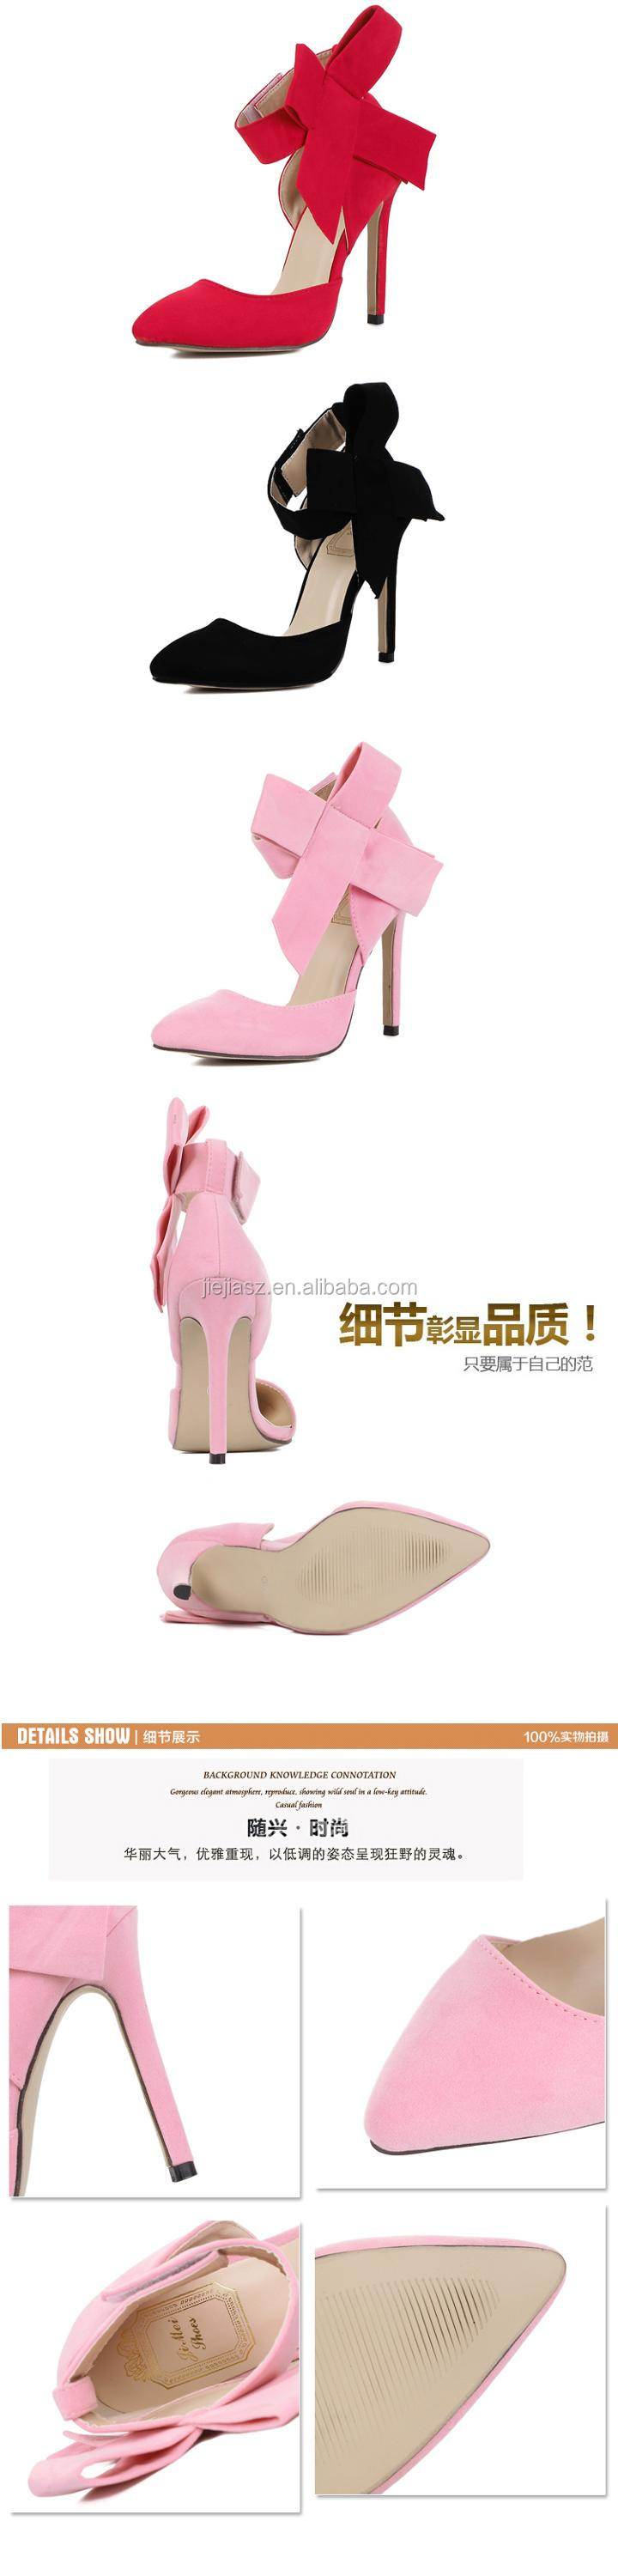 New design ladies suede shoes rosette ornament hollow out high heel shoes